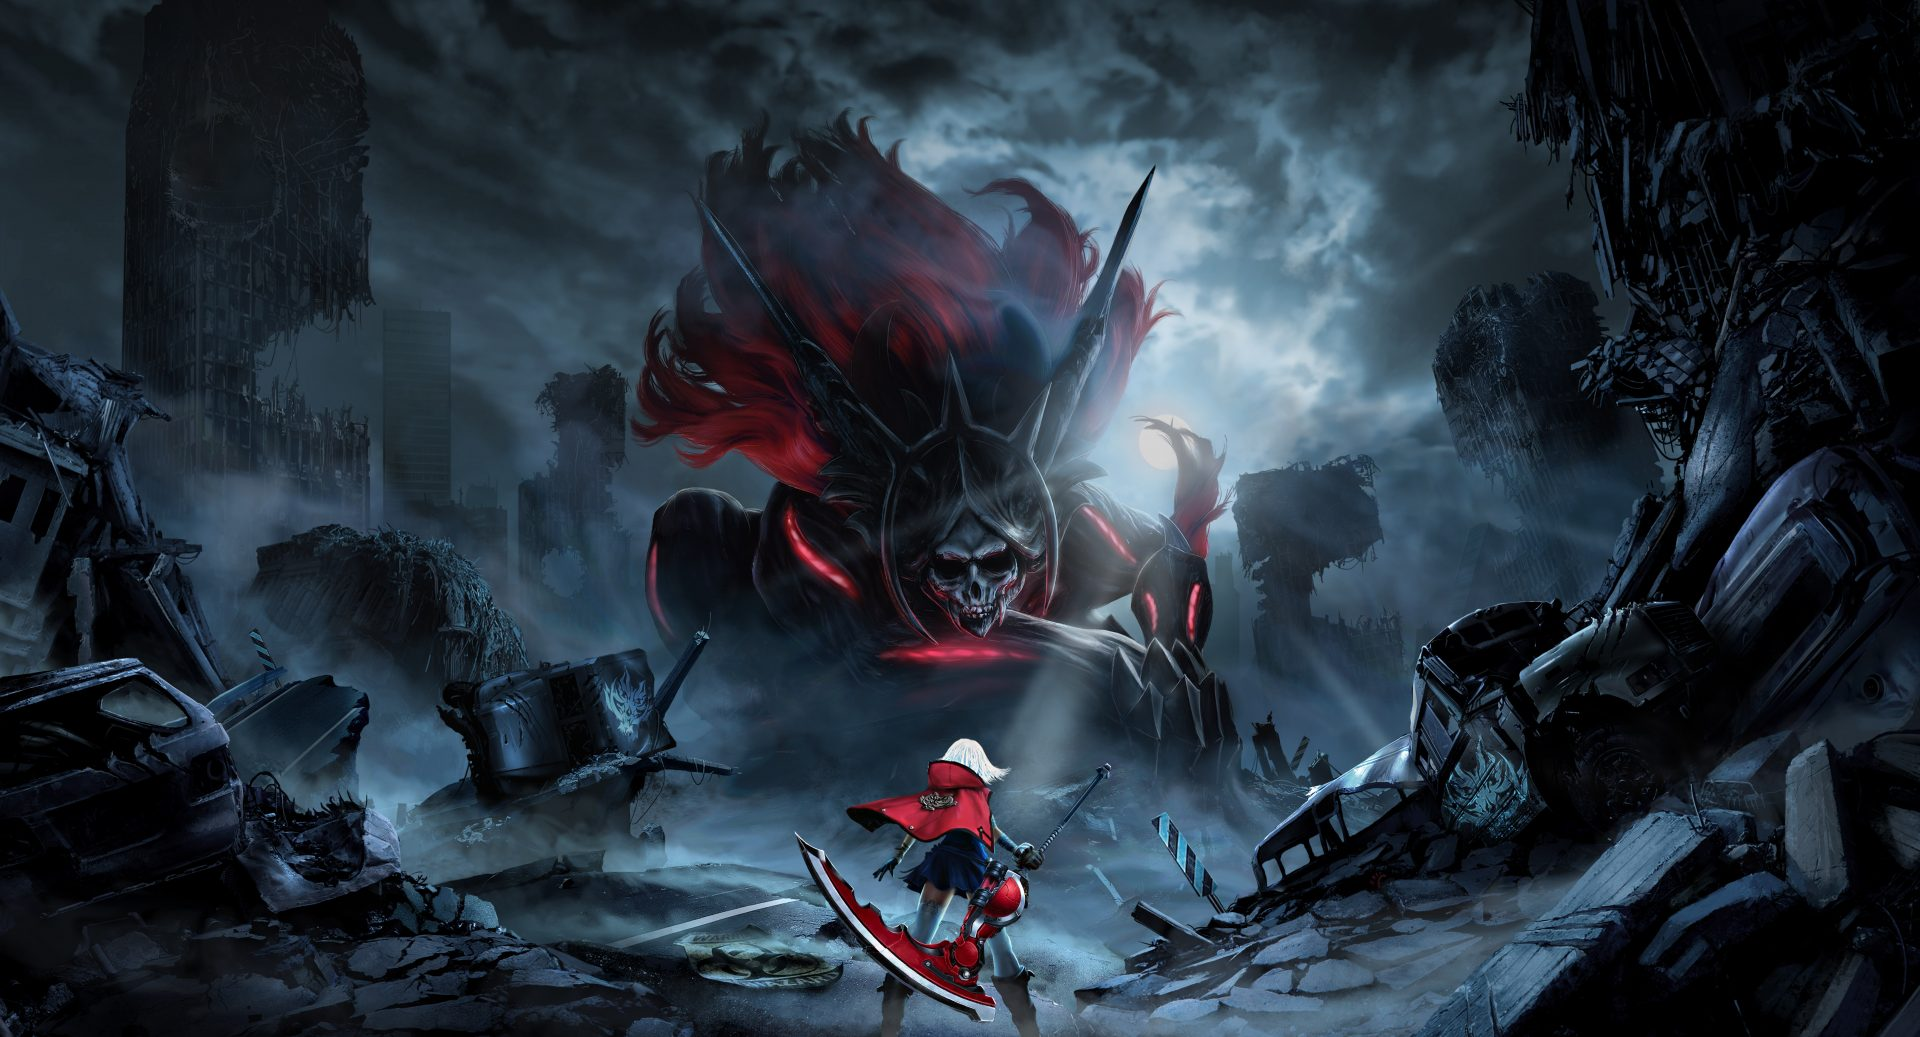 Review: God Eater 2: Rage Burst